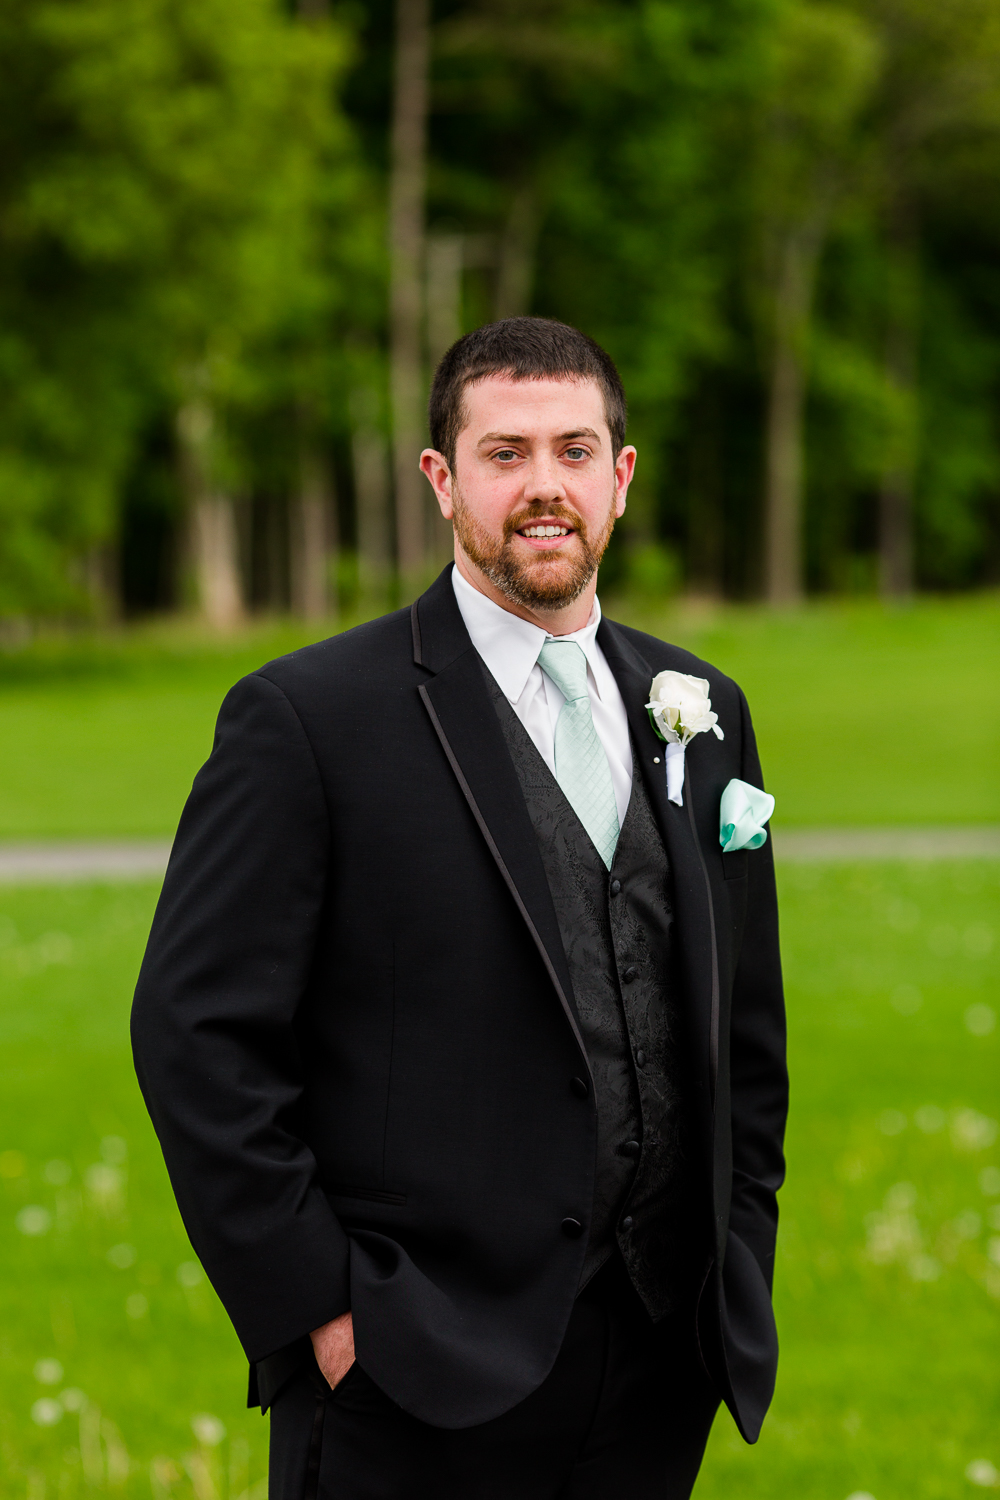 Portrait of a groom in a black tuxedo with a blue tie.